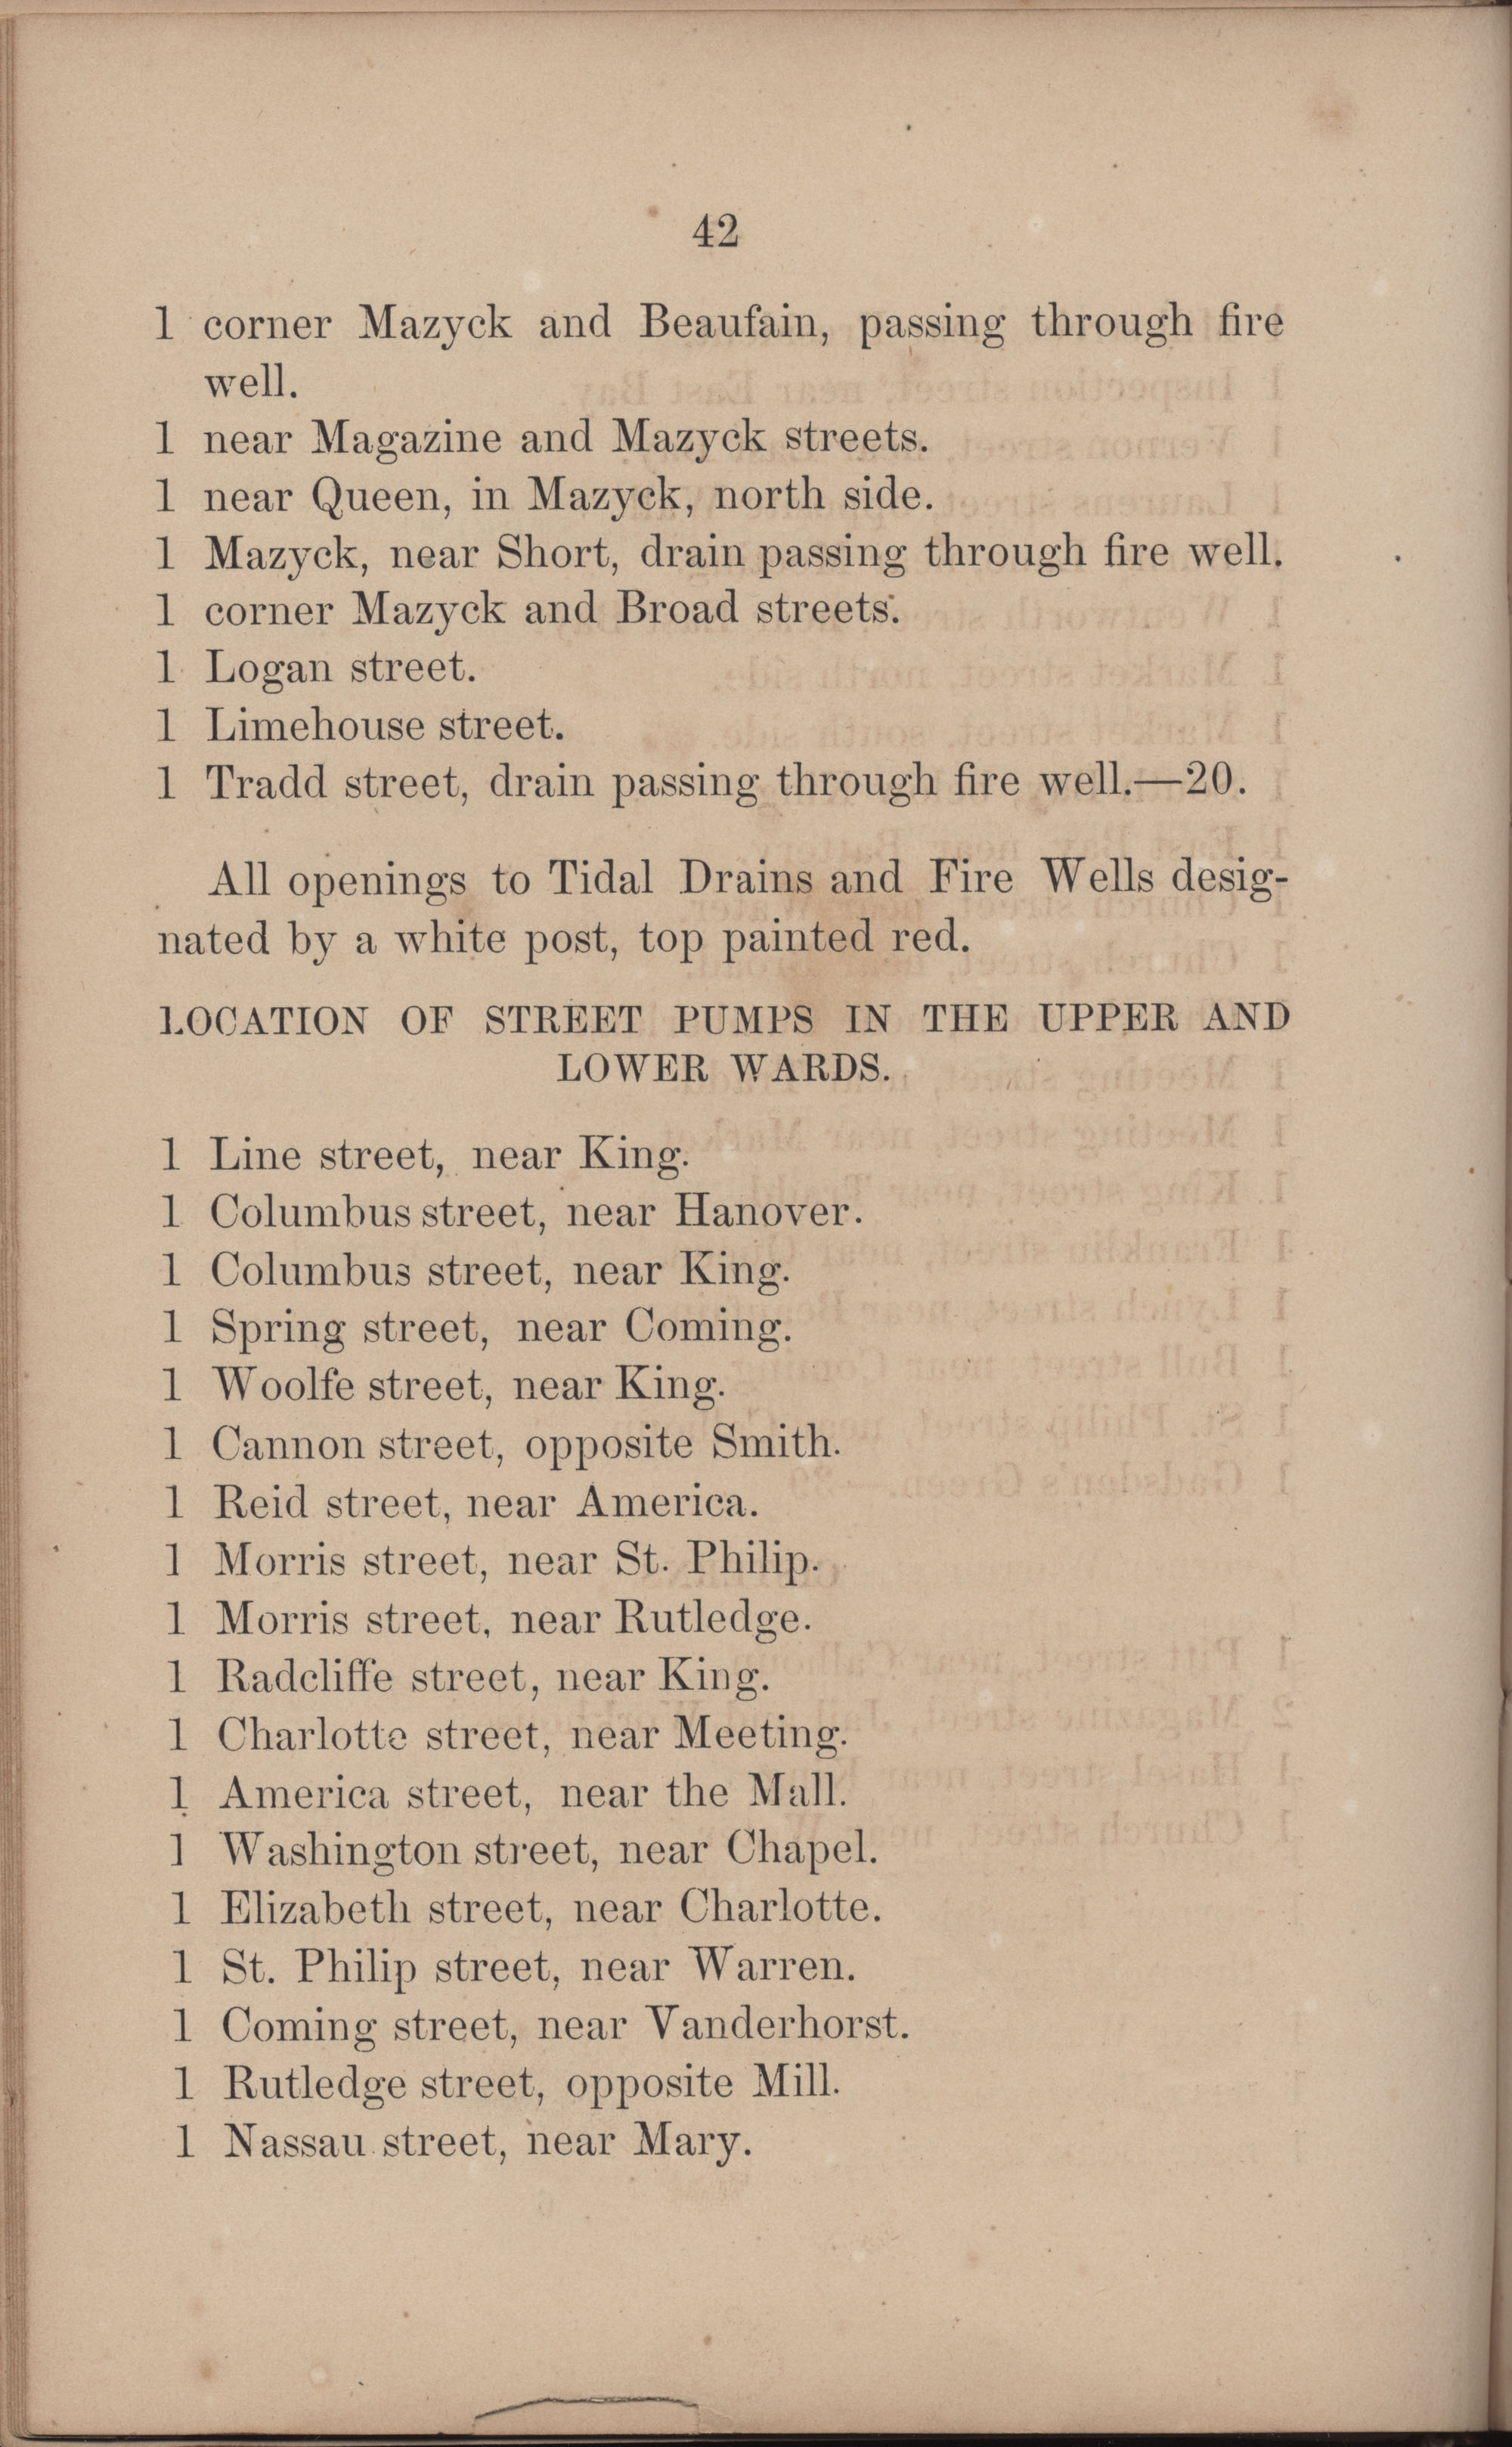 Annual Report of the Chief of the Fire Department of the City of Charleston, page 220